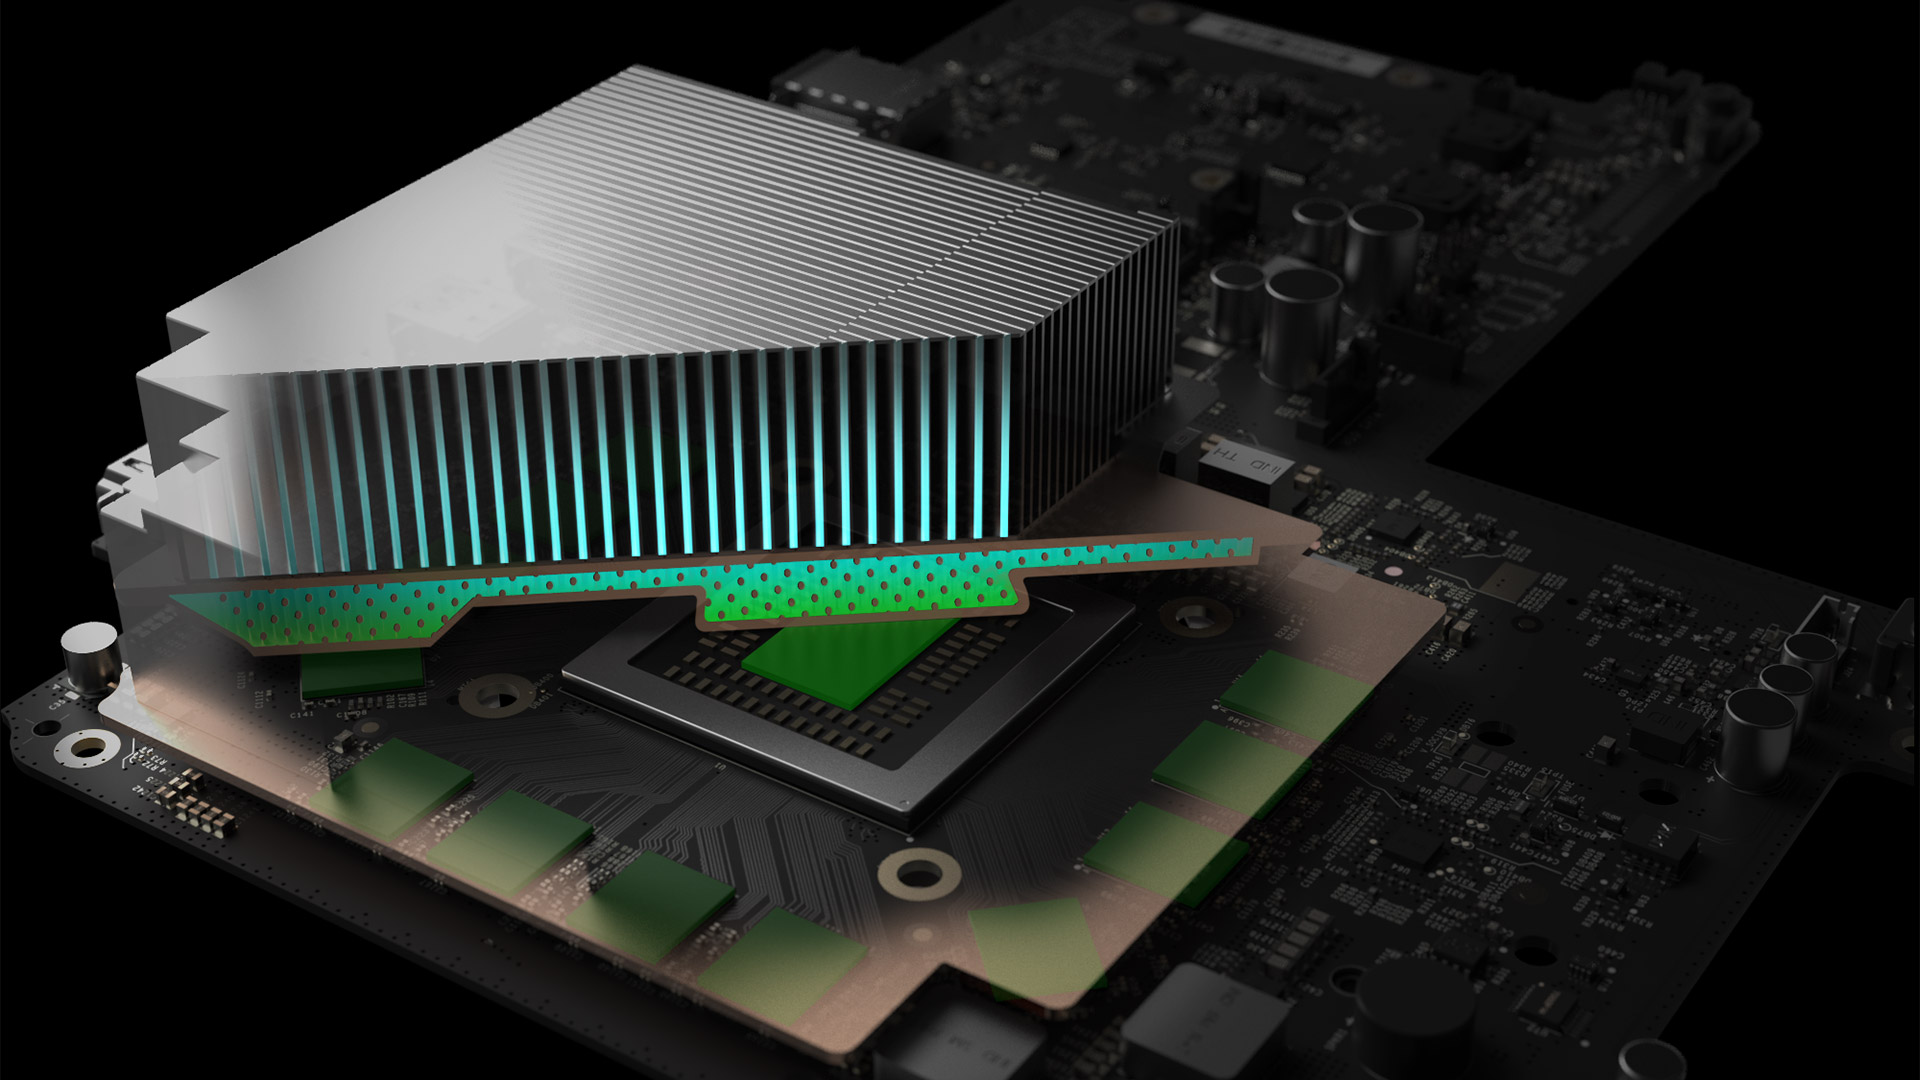 Xbox Project Scorpio Specs Exposed! Eight CPU Cores, 40 AMD GPU Cores And 12GB Of GDDR5